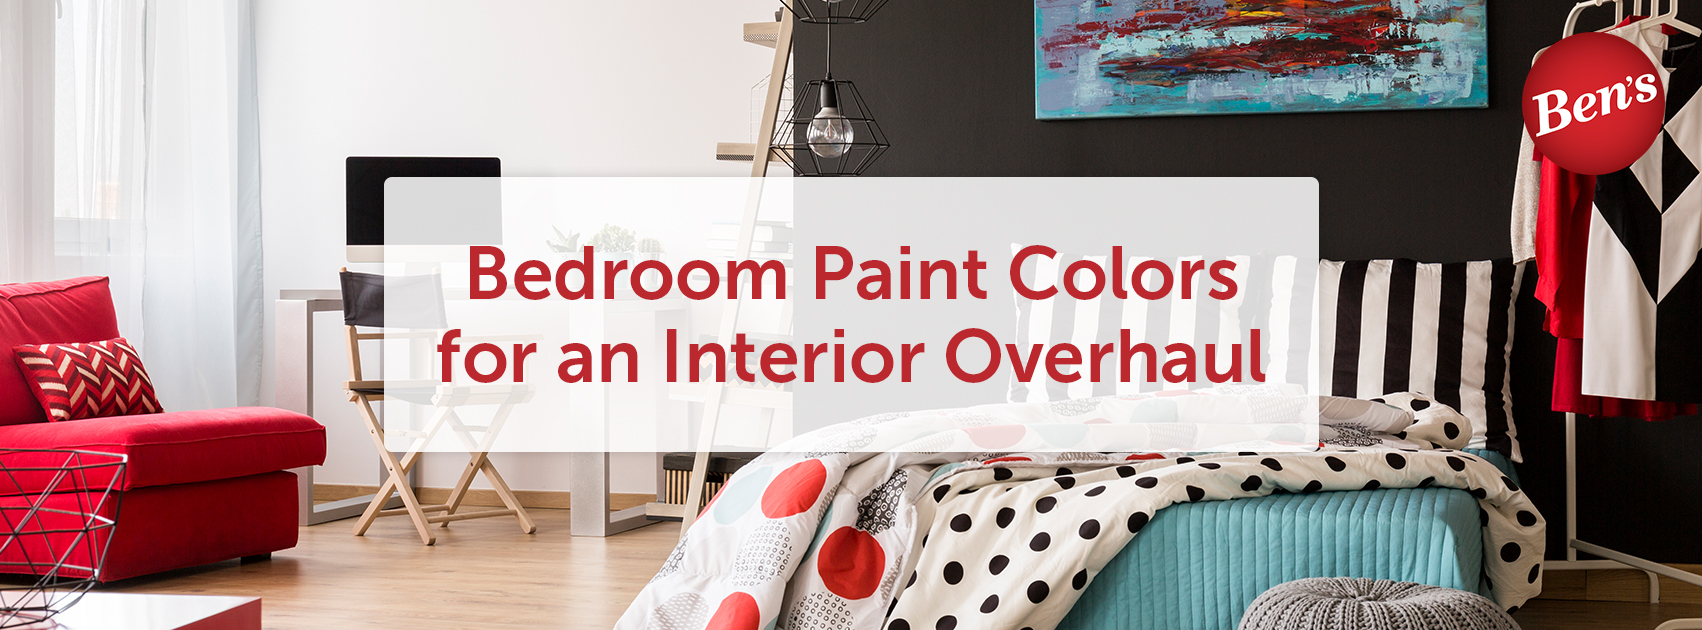 Bedroom Paint Colors for an Interior Overhaul